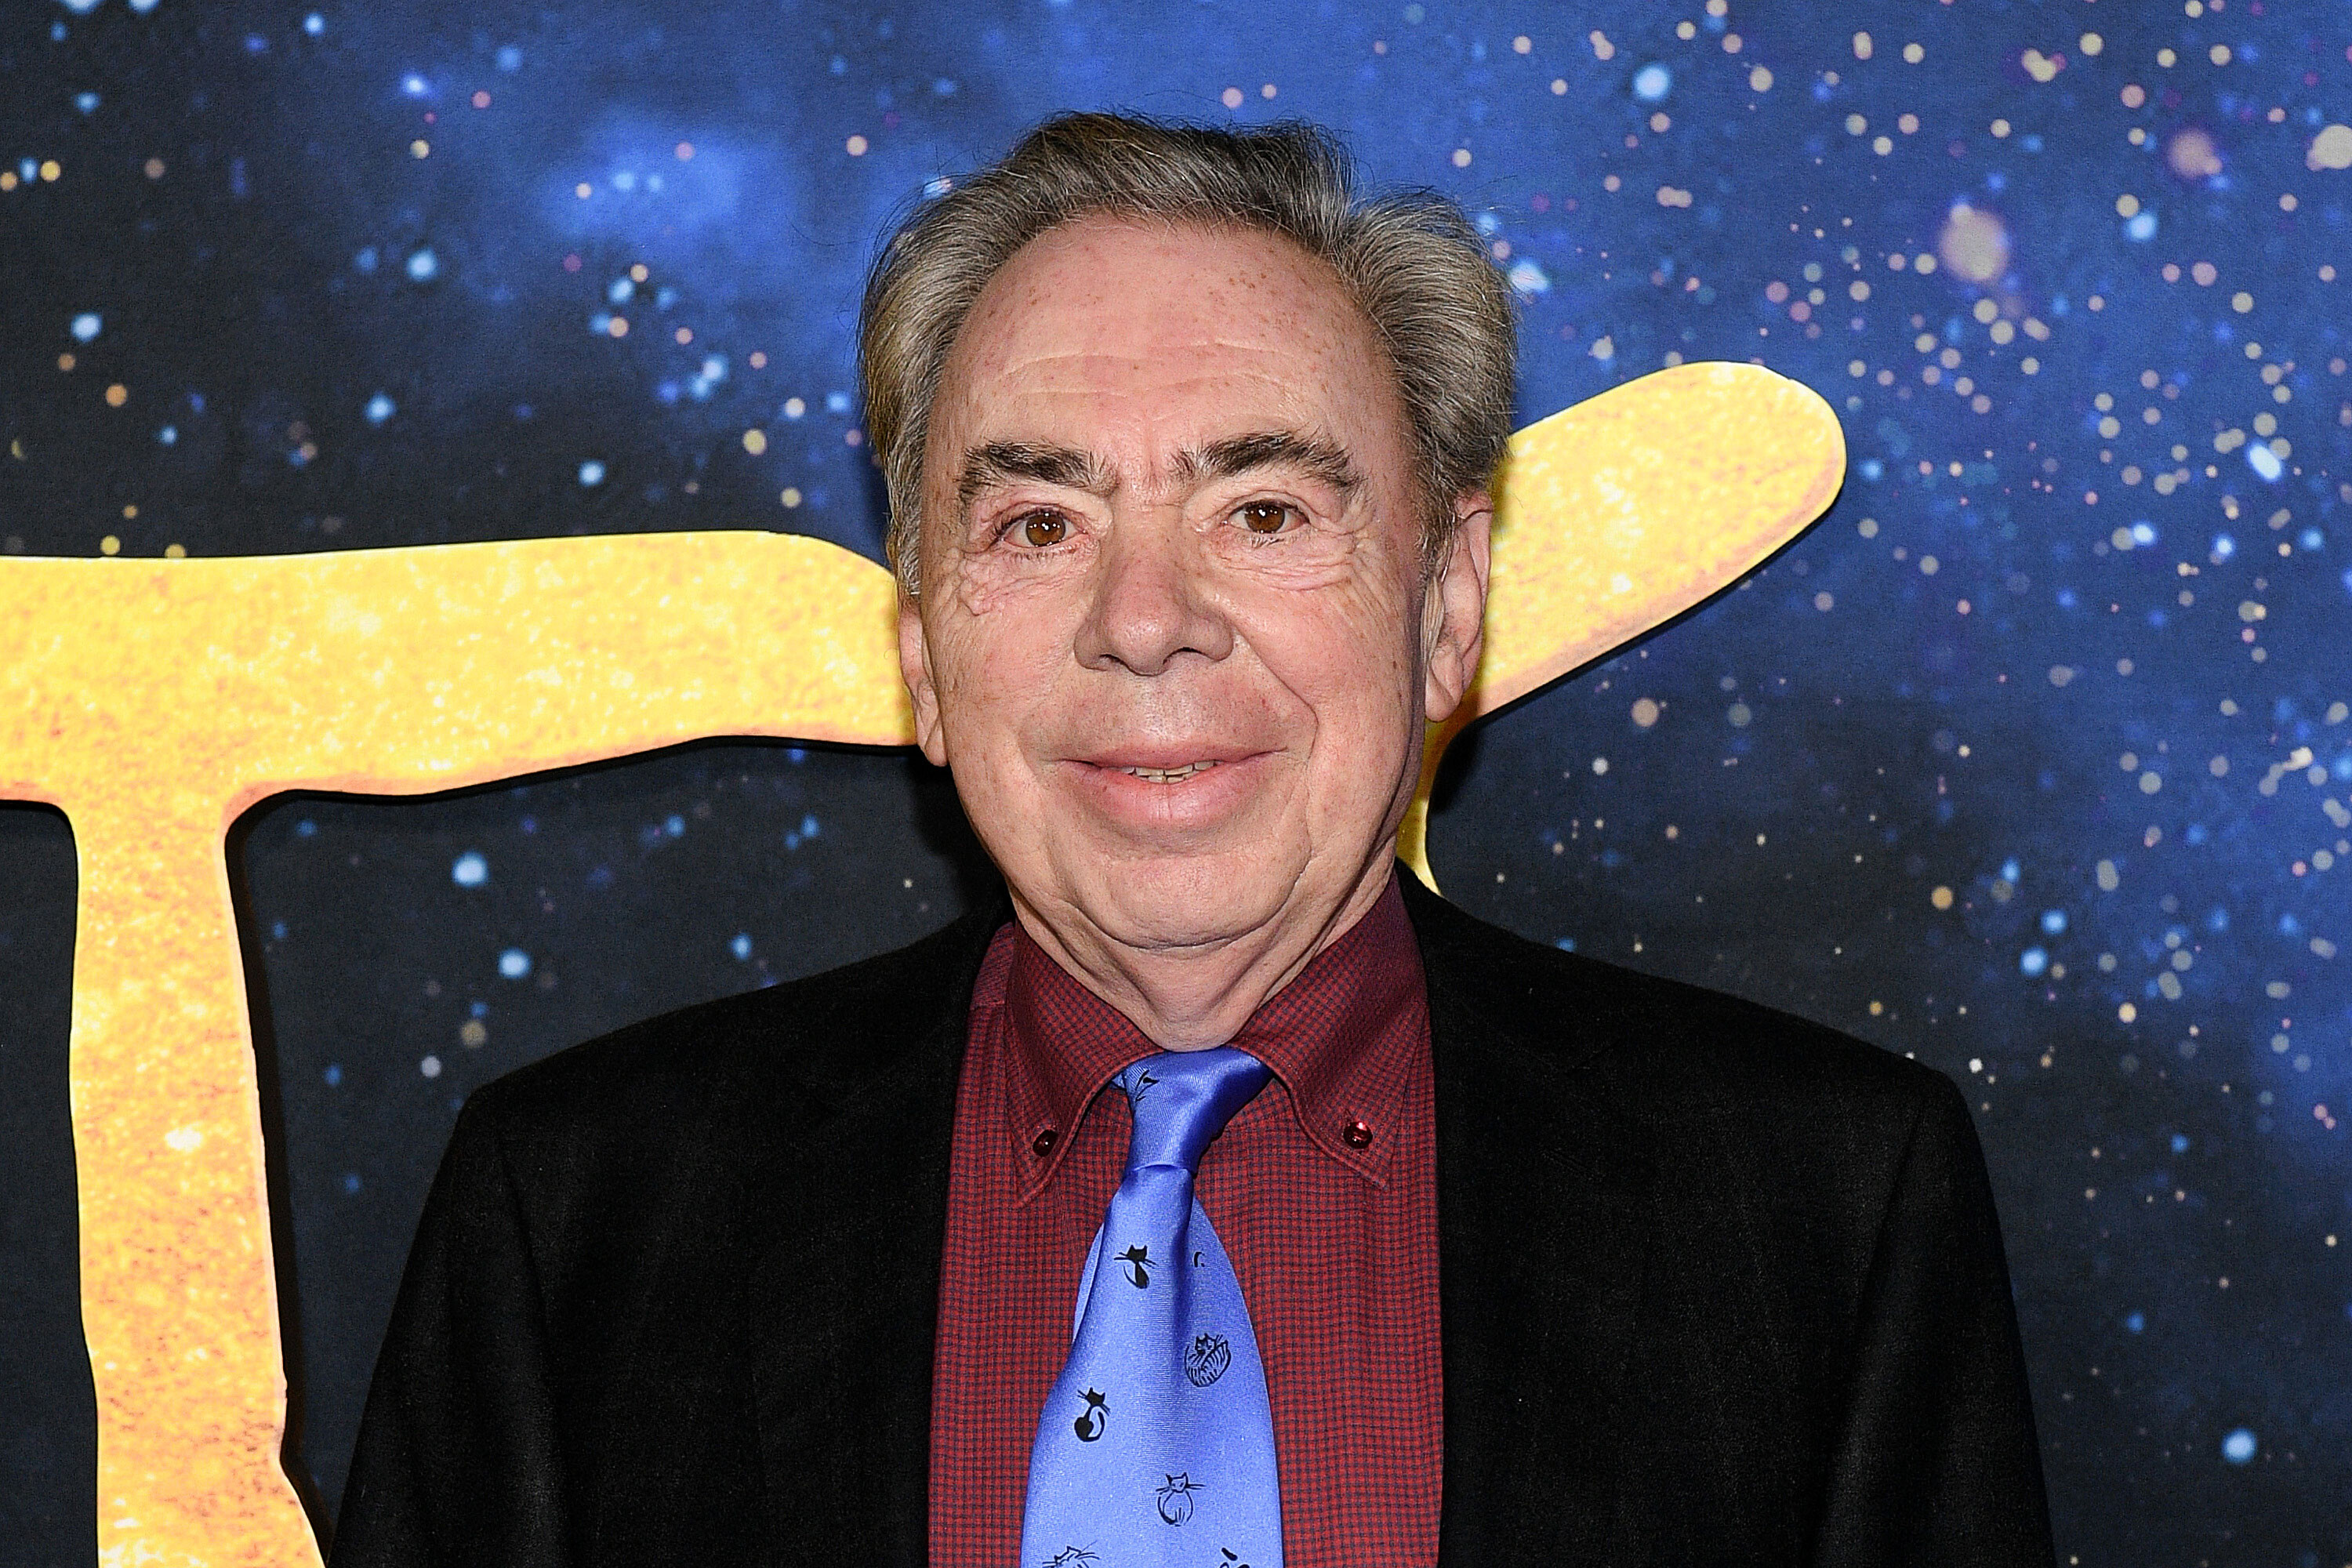 Andrew Lloyd Webber bought a dog because 'Cats' was so bad